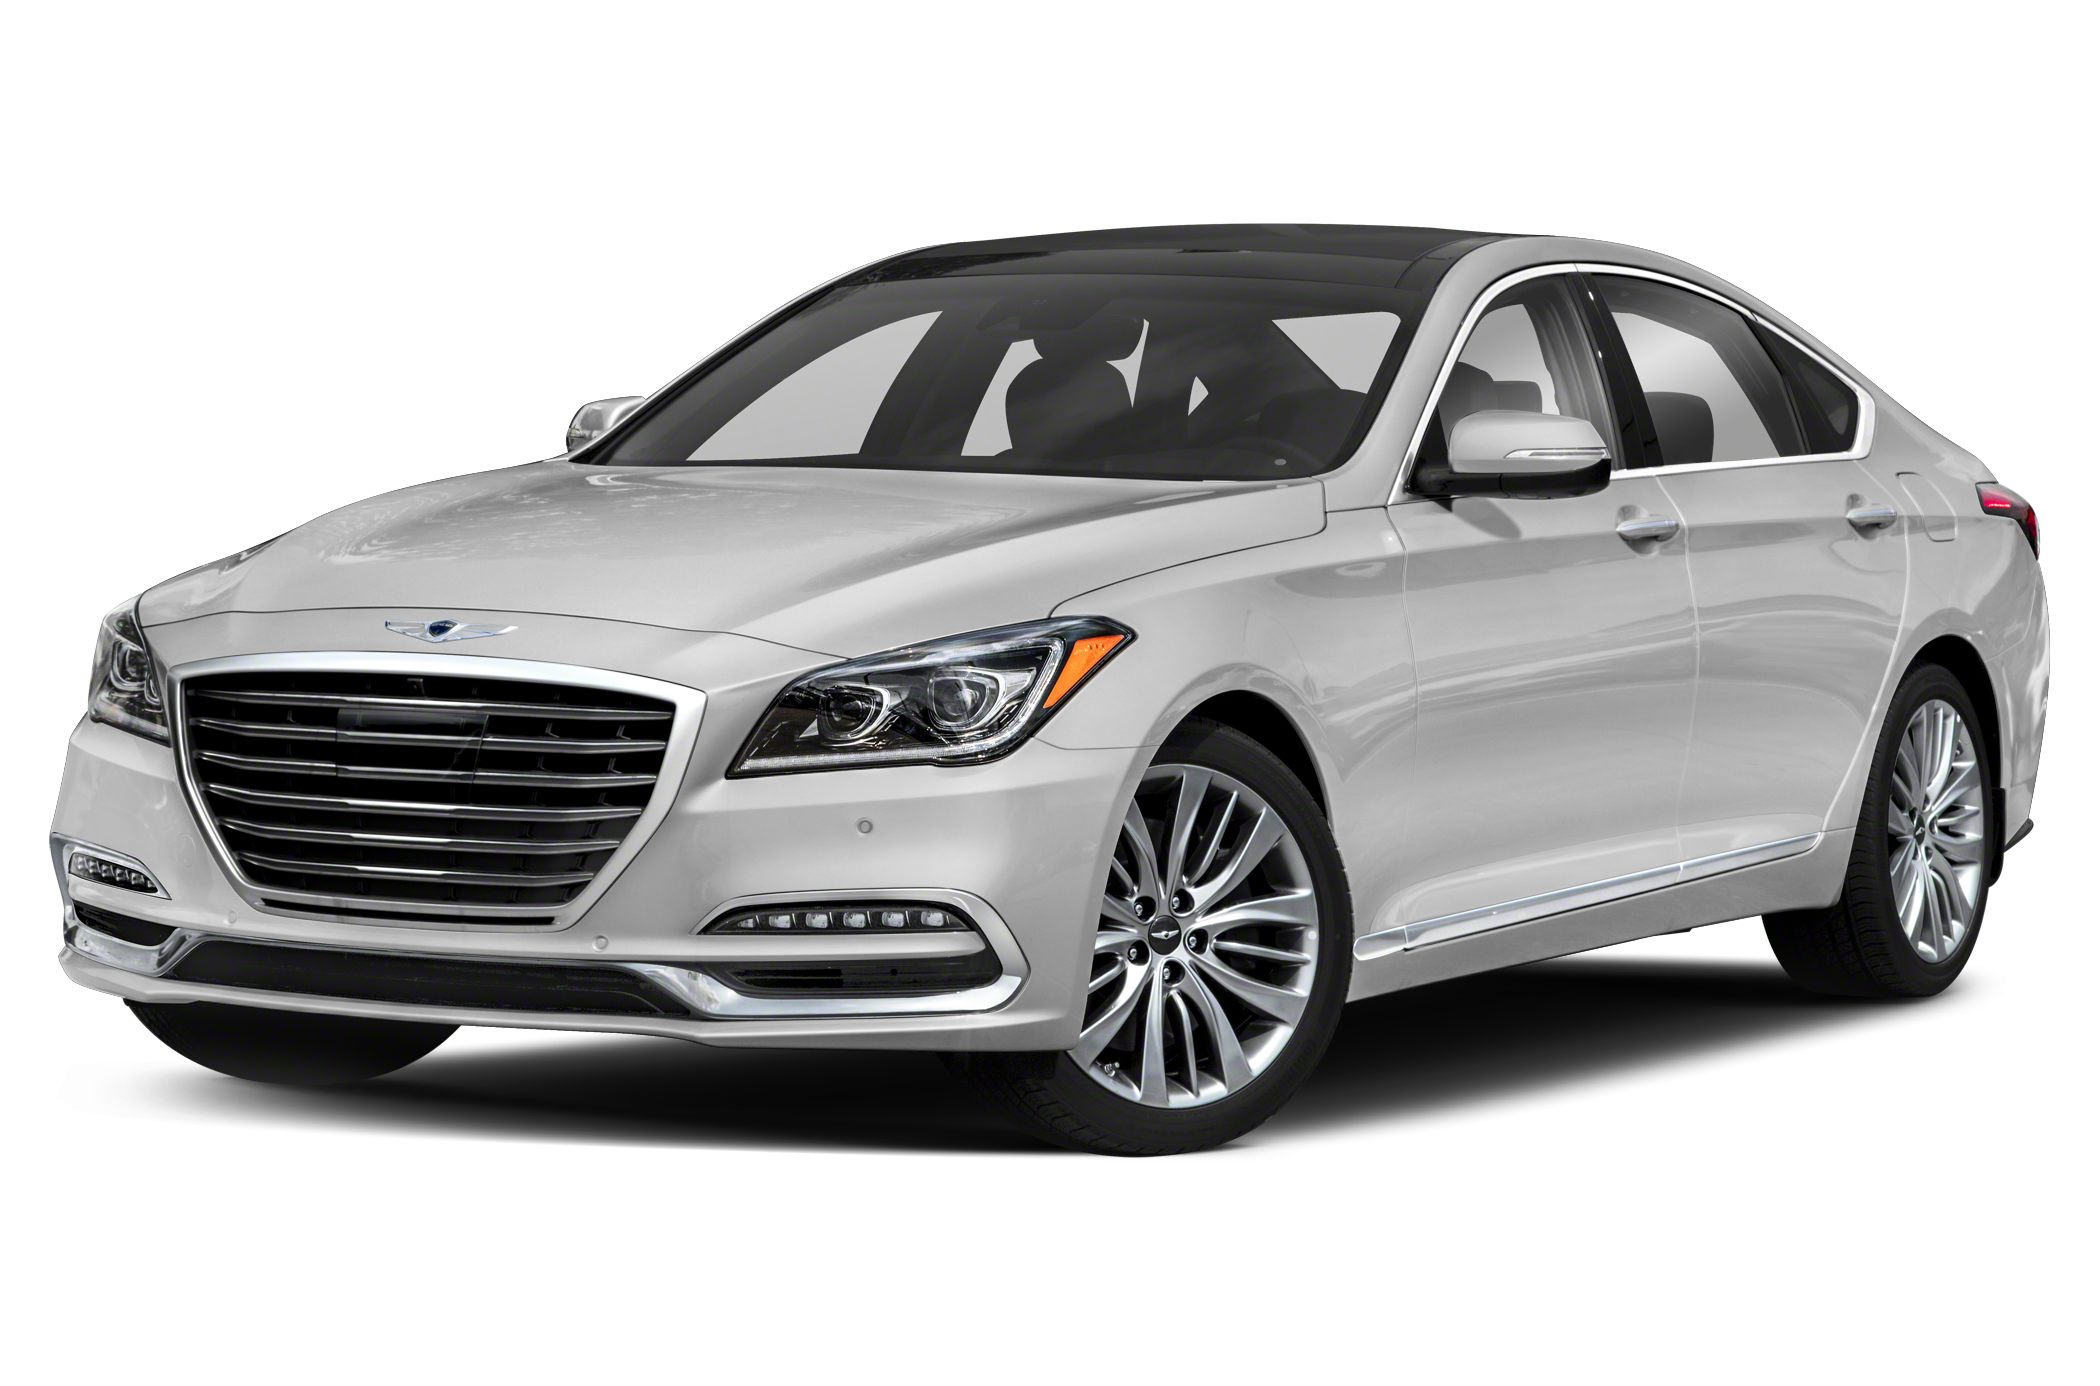 2020 Genesis G80 5 0 Ultimate 4dr All Wheel Drive Sedan Specs And Prices